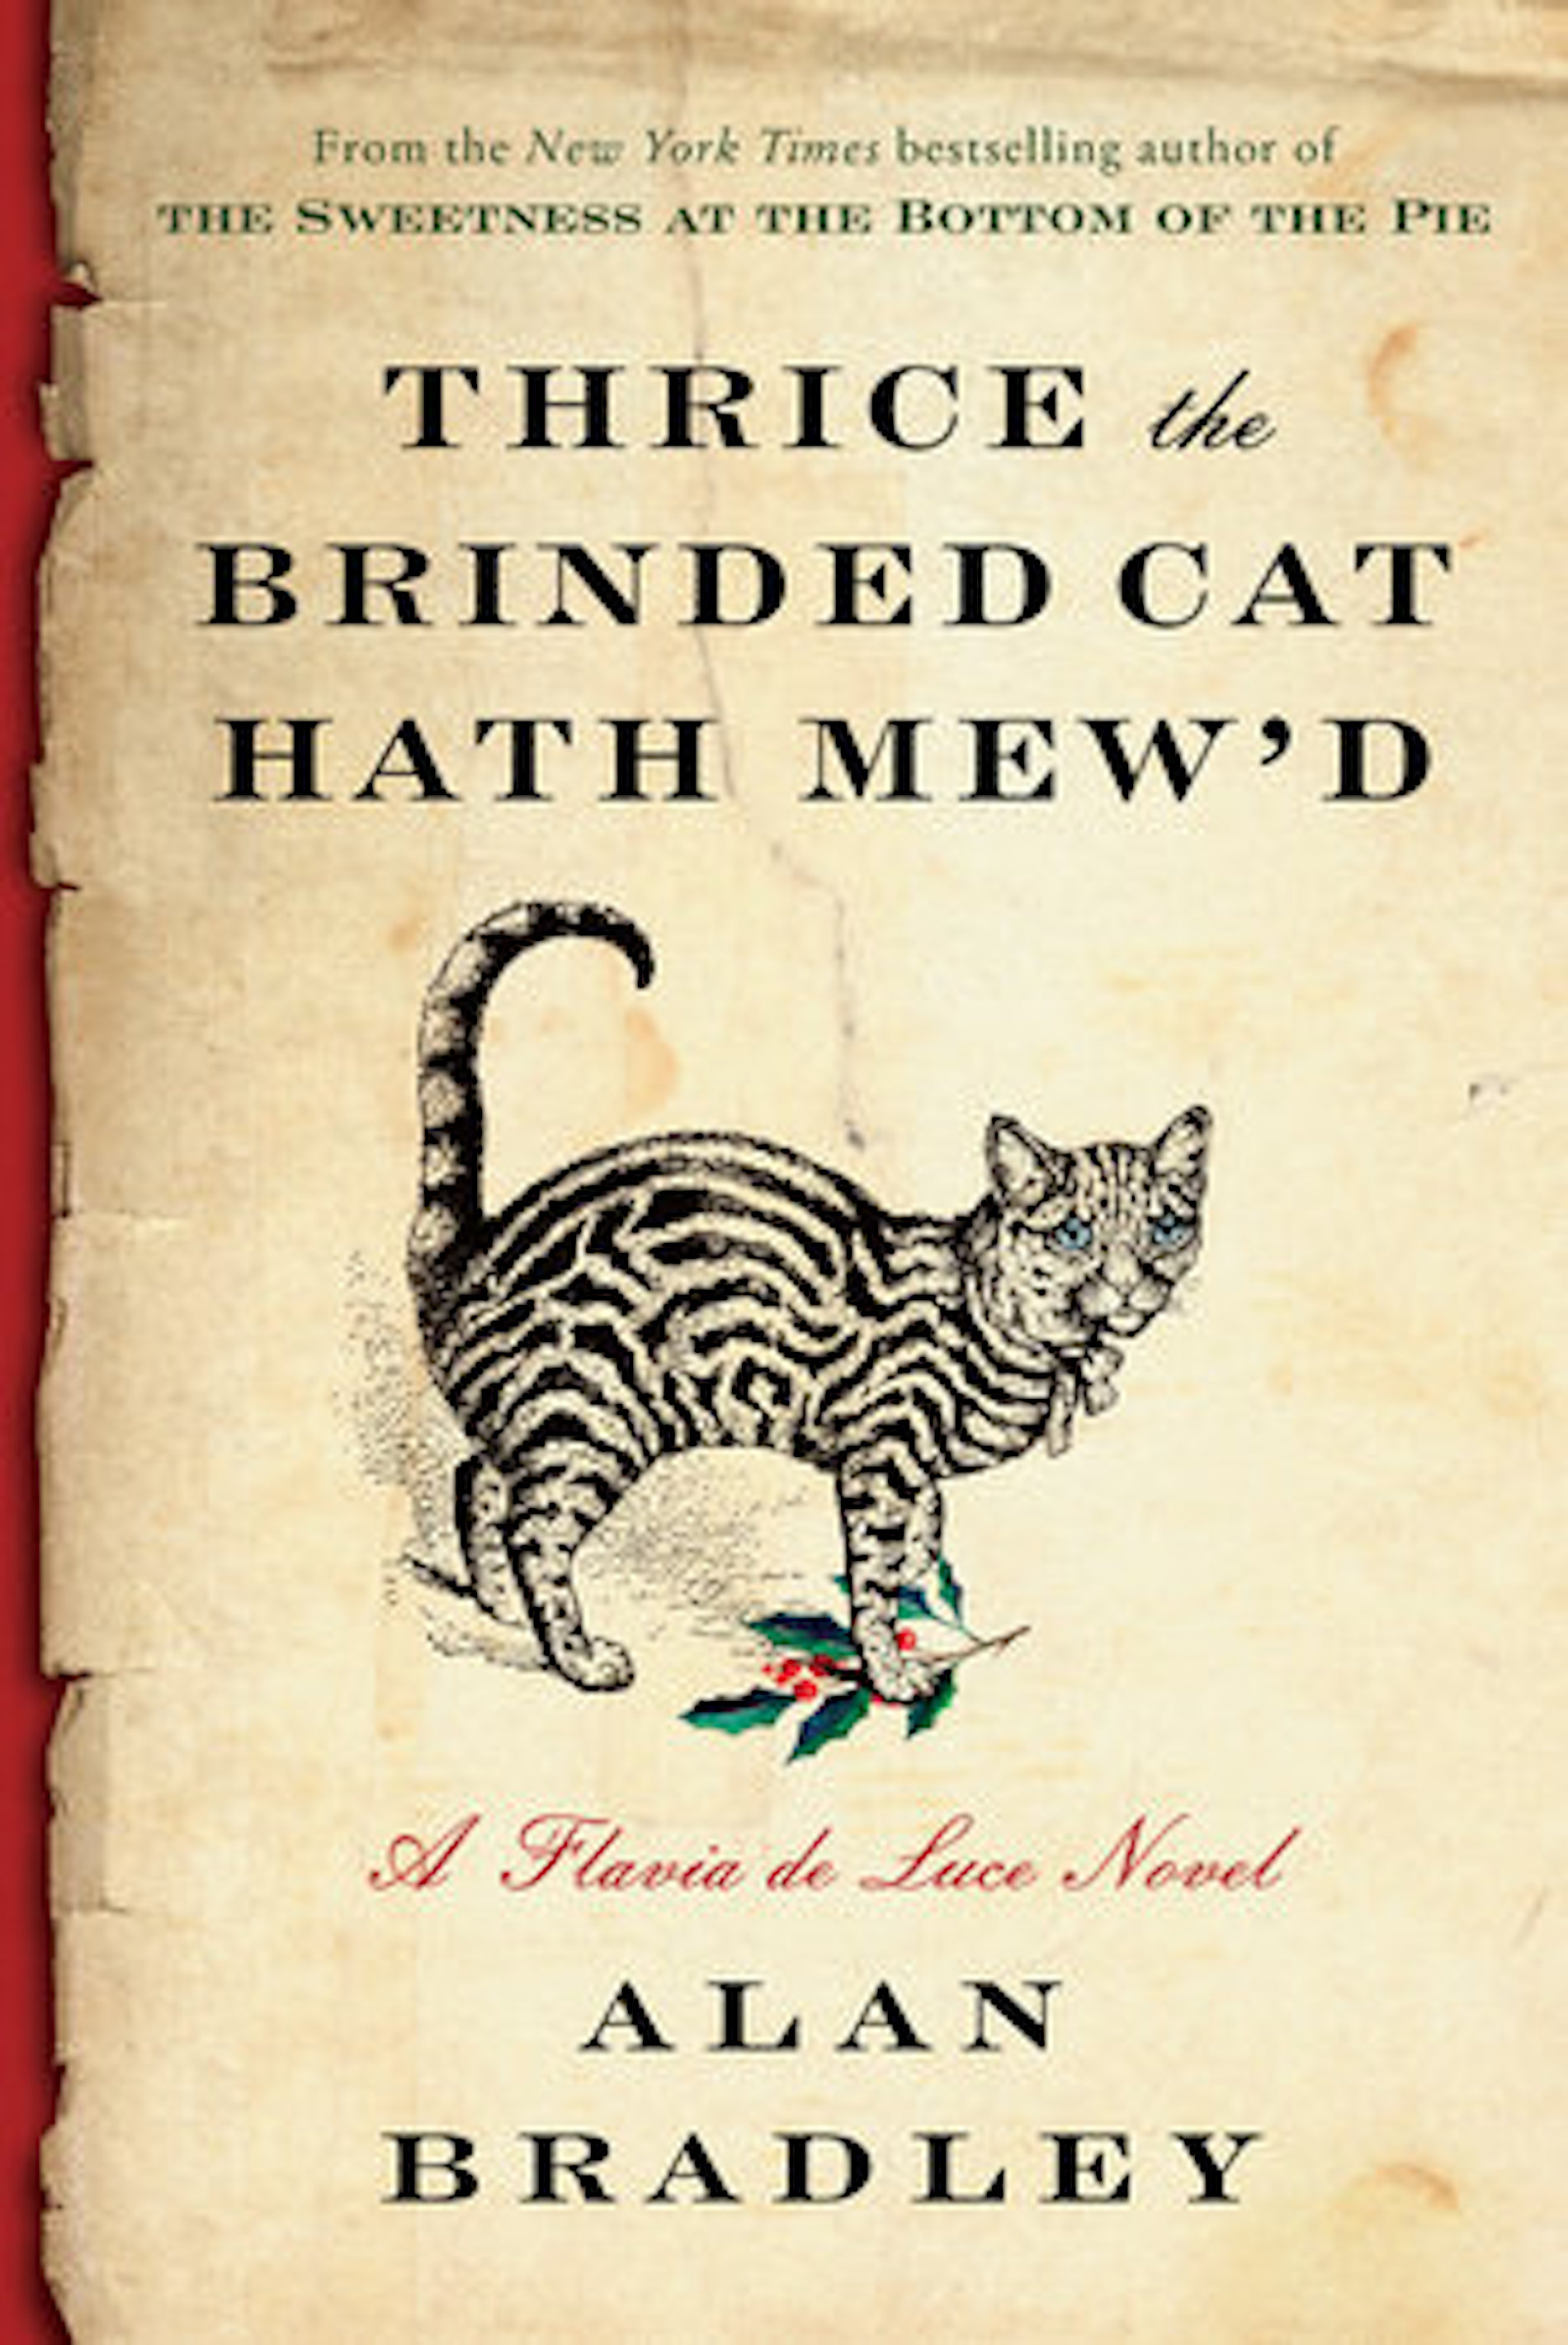 I've Read This #MondayReads | Thrice the Brinded Cat Hath Mew'd by Alan Bradley | BL | Black Lion Journal | Black Lion